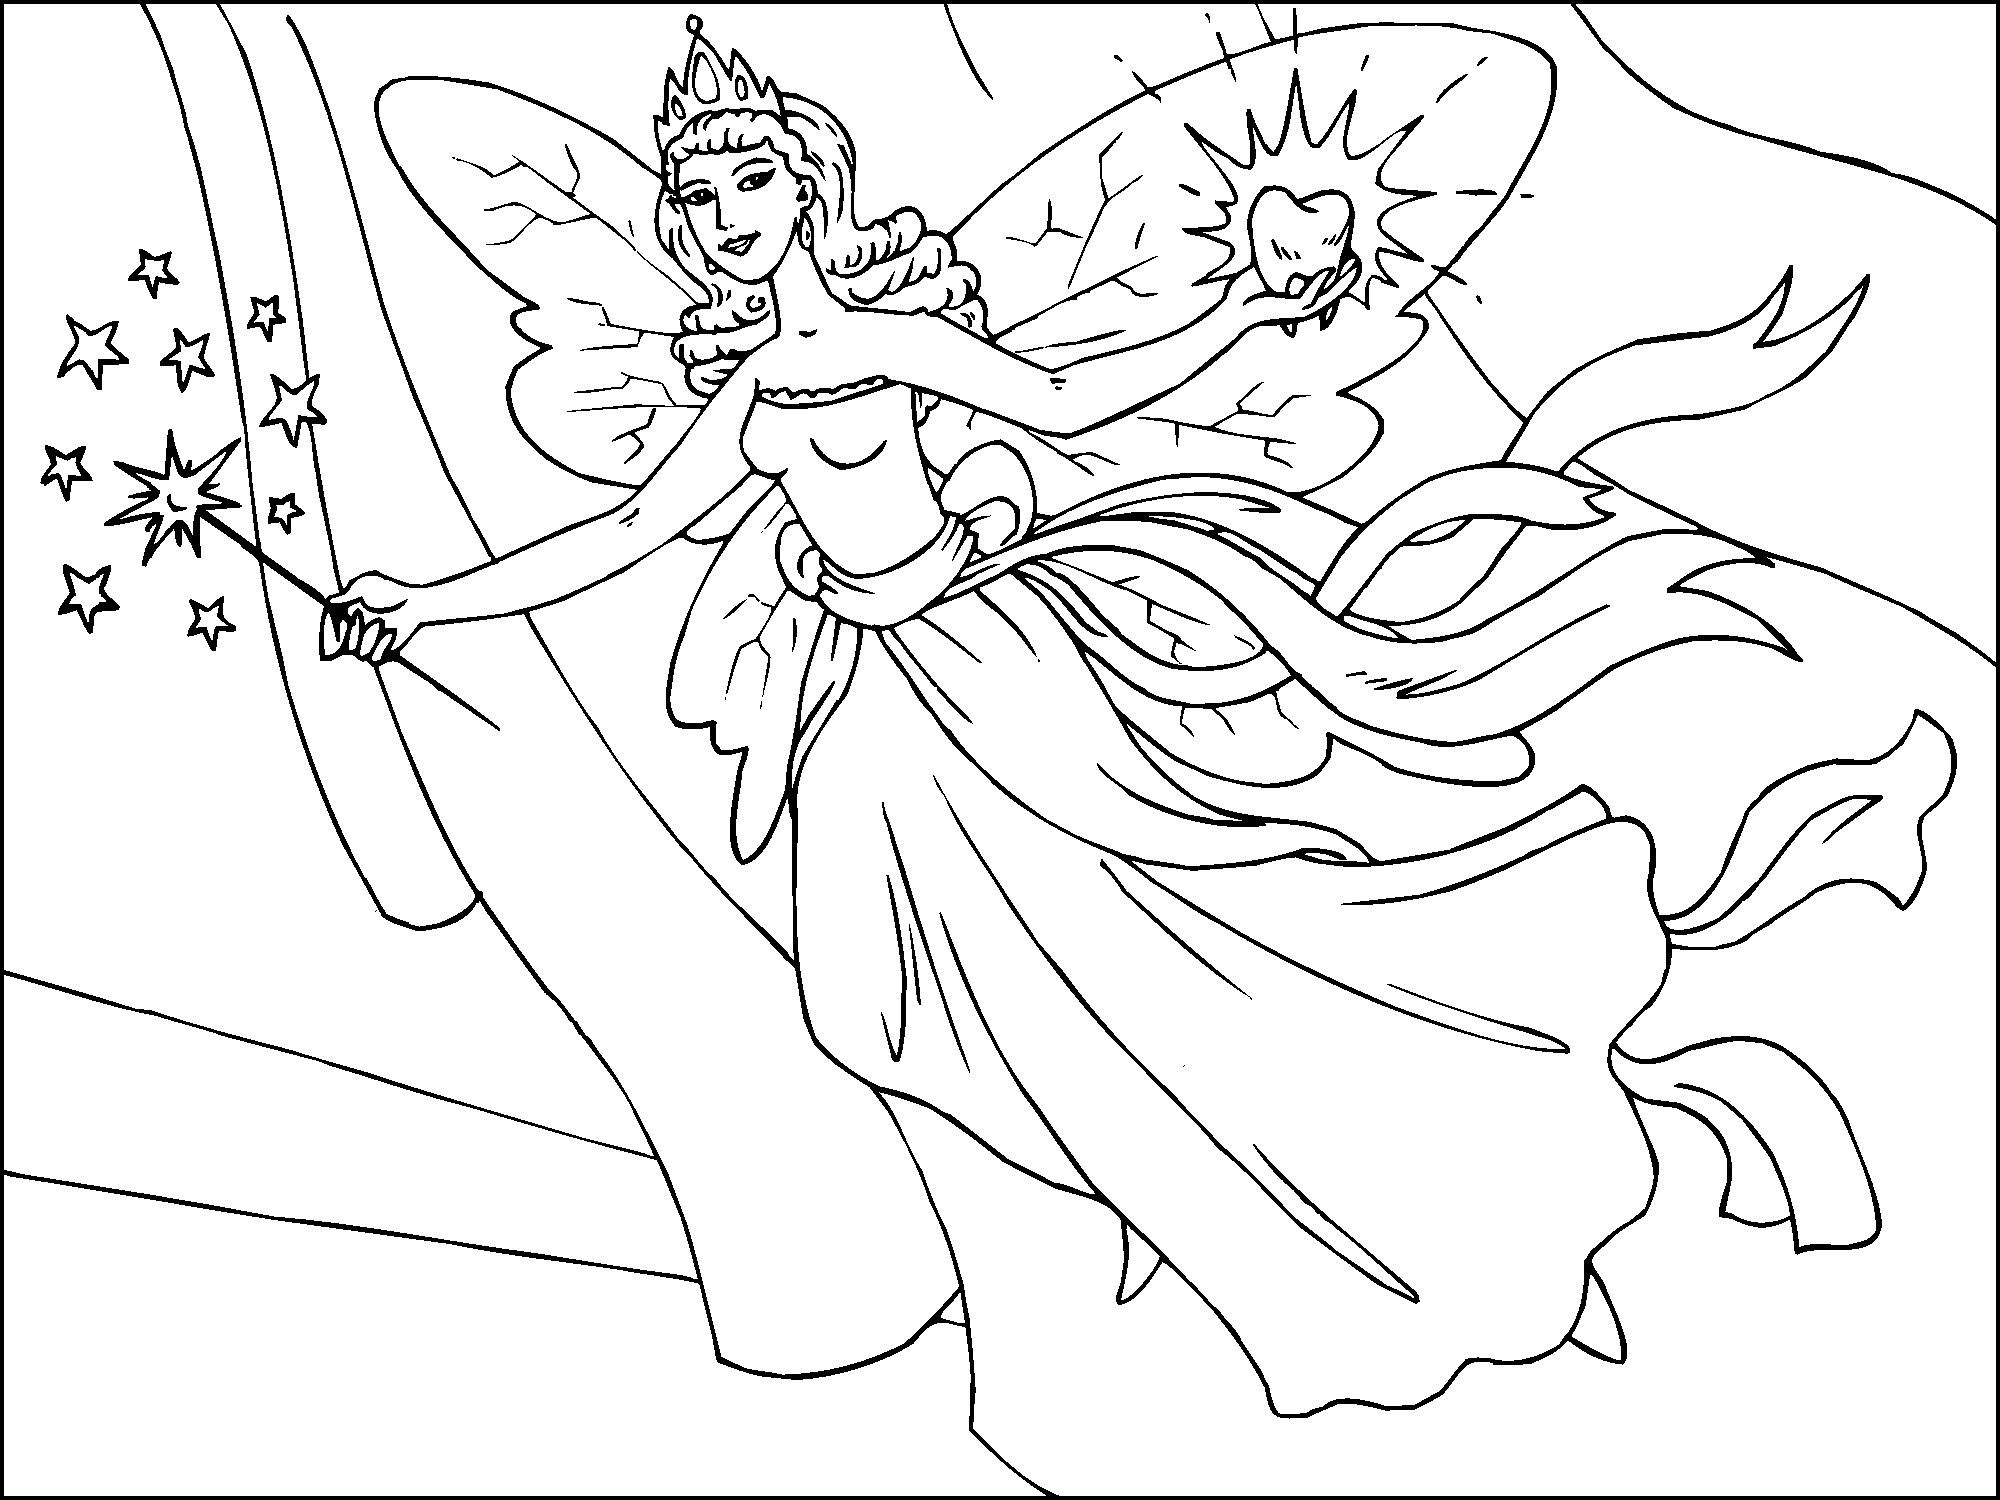 graphic regarding Printable Fairies Coloring Pages referred to as No cost Printable Fairy Coloring Web pages For Little ones every thing